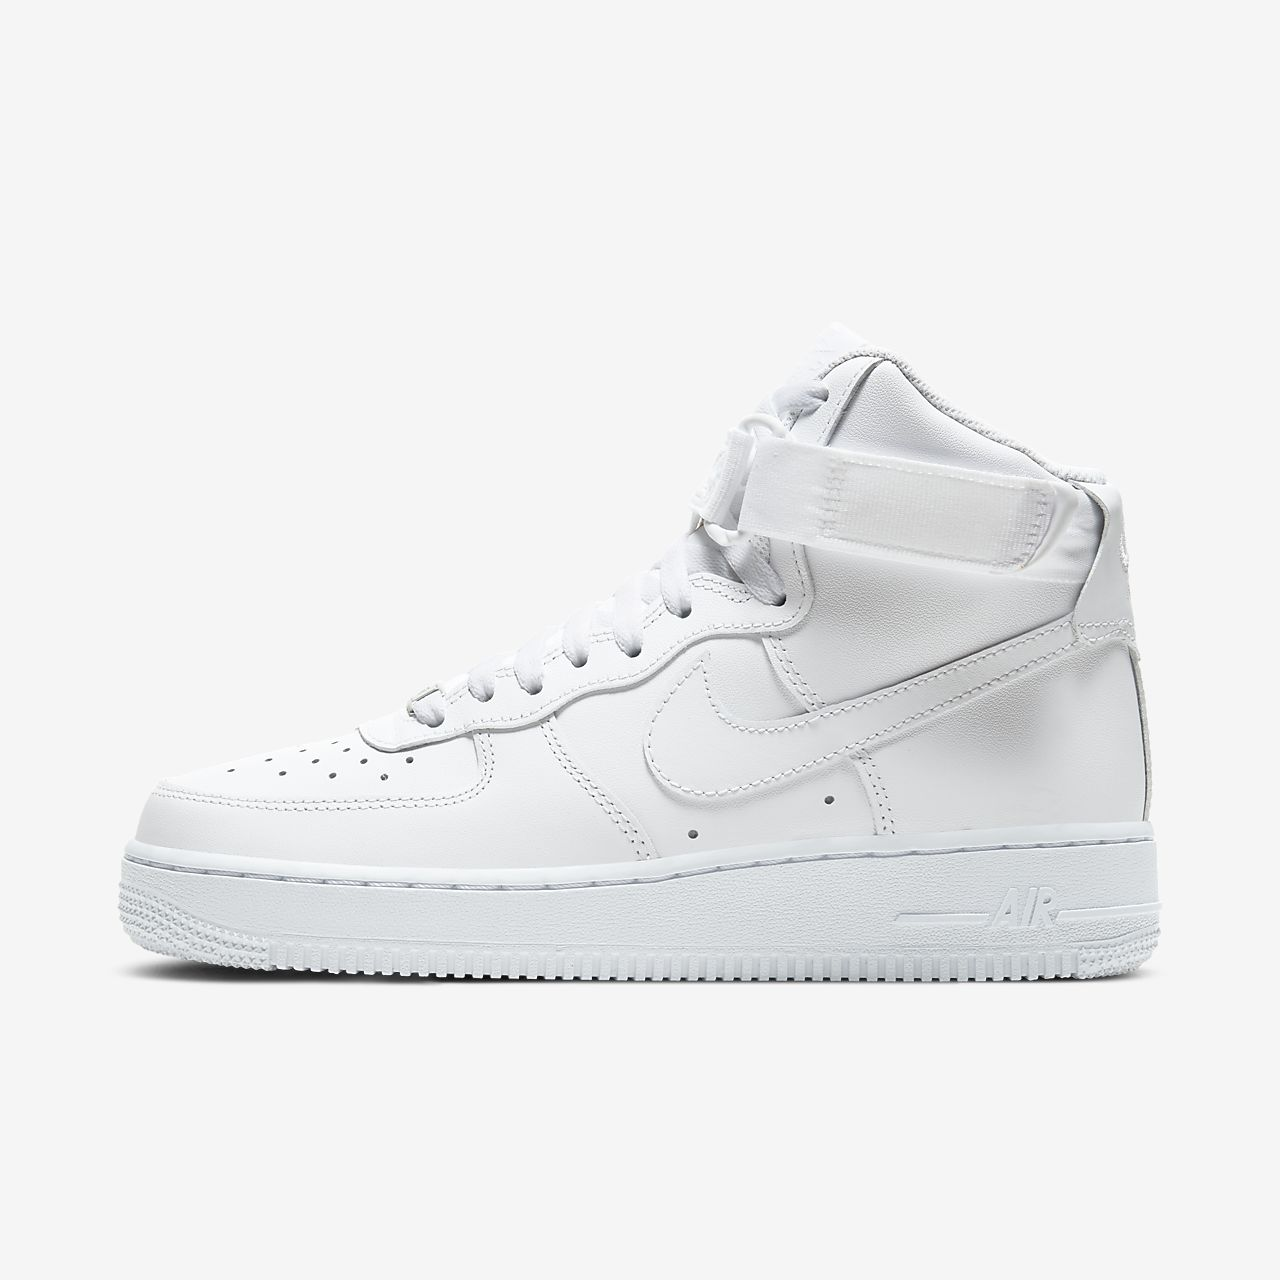 new product f72cb 9186d ... Sapatilhas Nike Air Force 1 High 08 LE para mulher